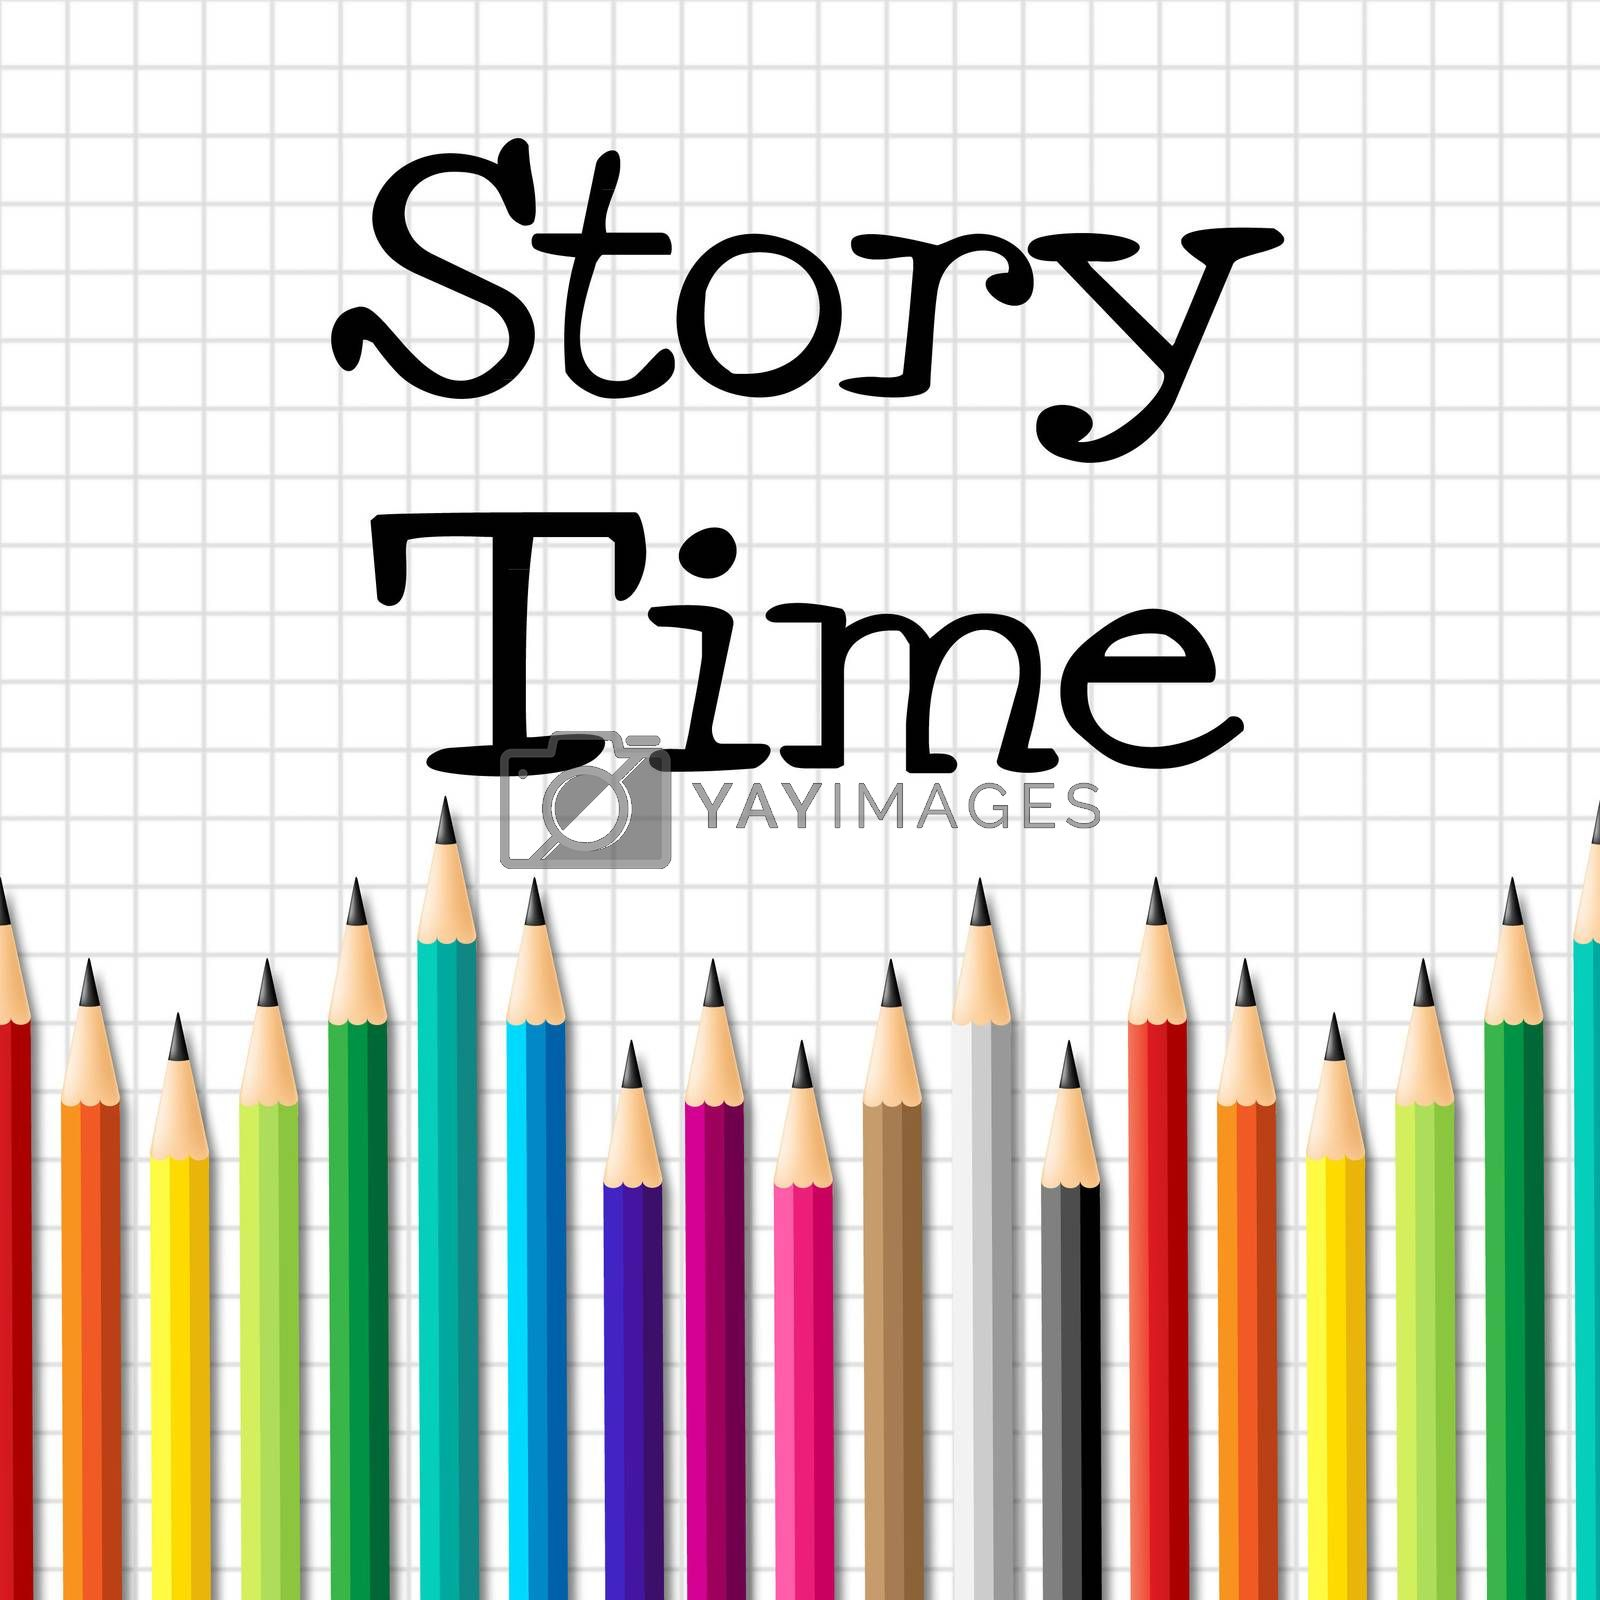 Story Time Represents Imaginative Writing And Children by stuartmiles